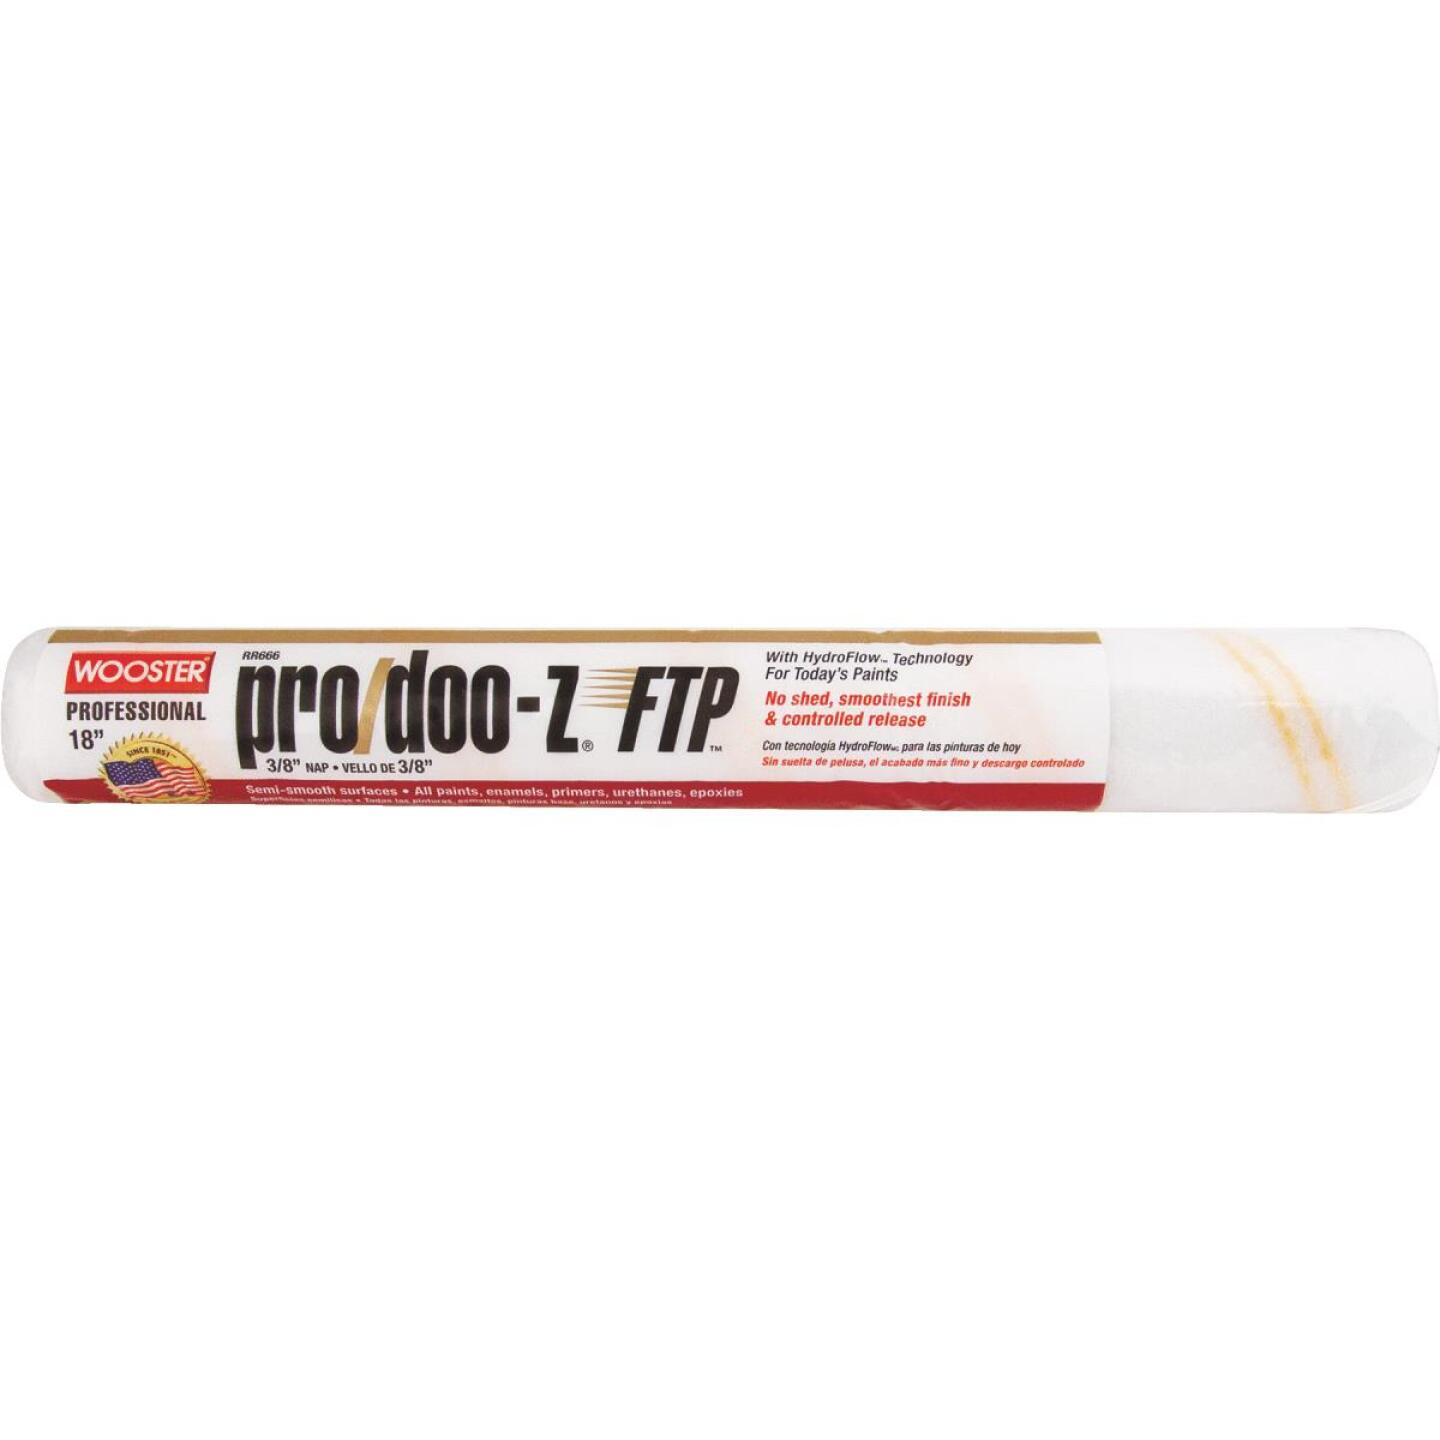 Wooster Pro/Doo-Z FTP 18 In. x 3/8 In. Woven Fabric Roller Cover Image 1